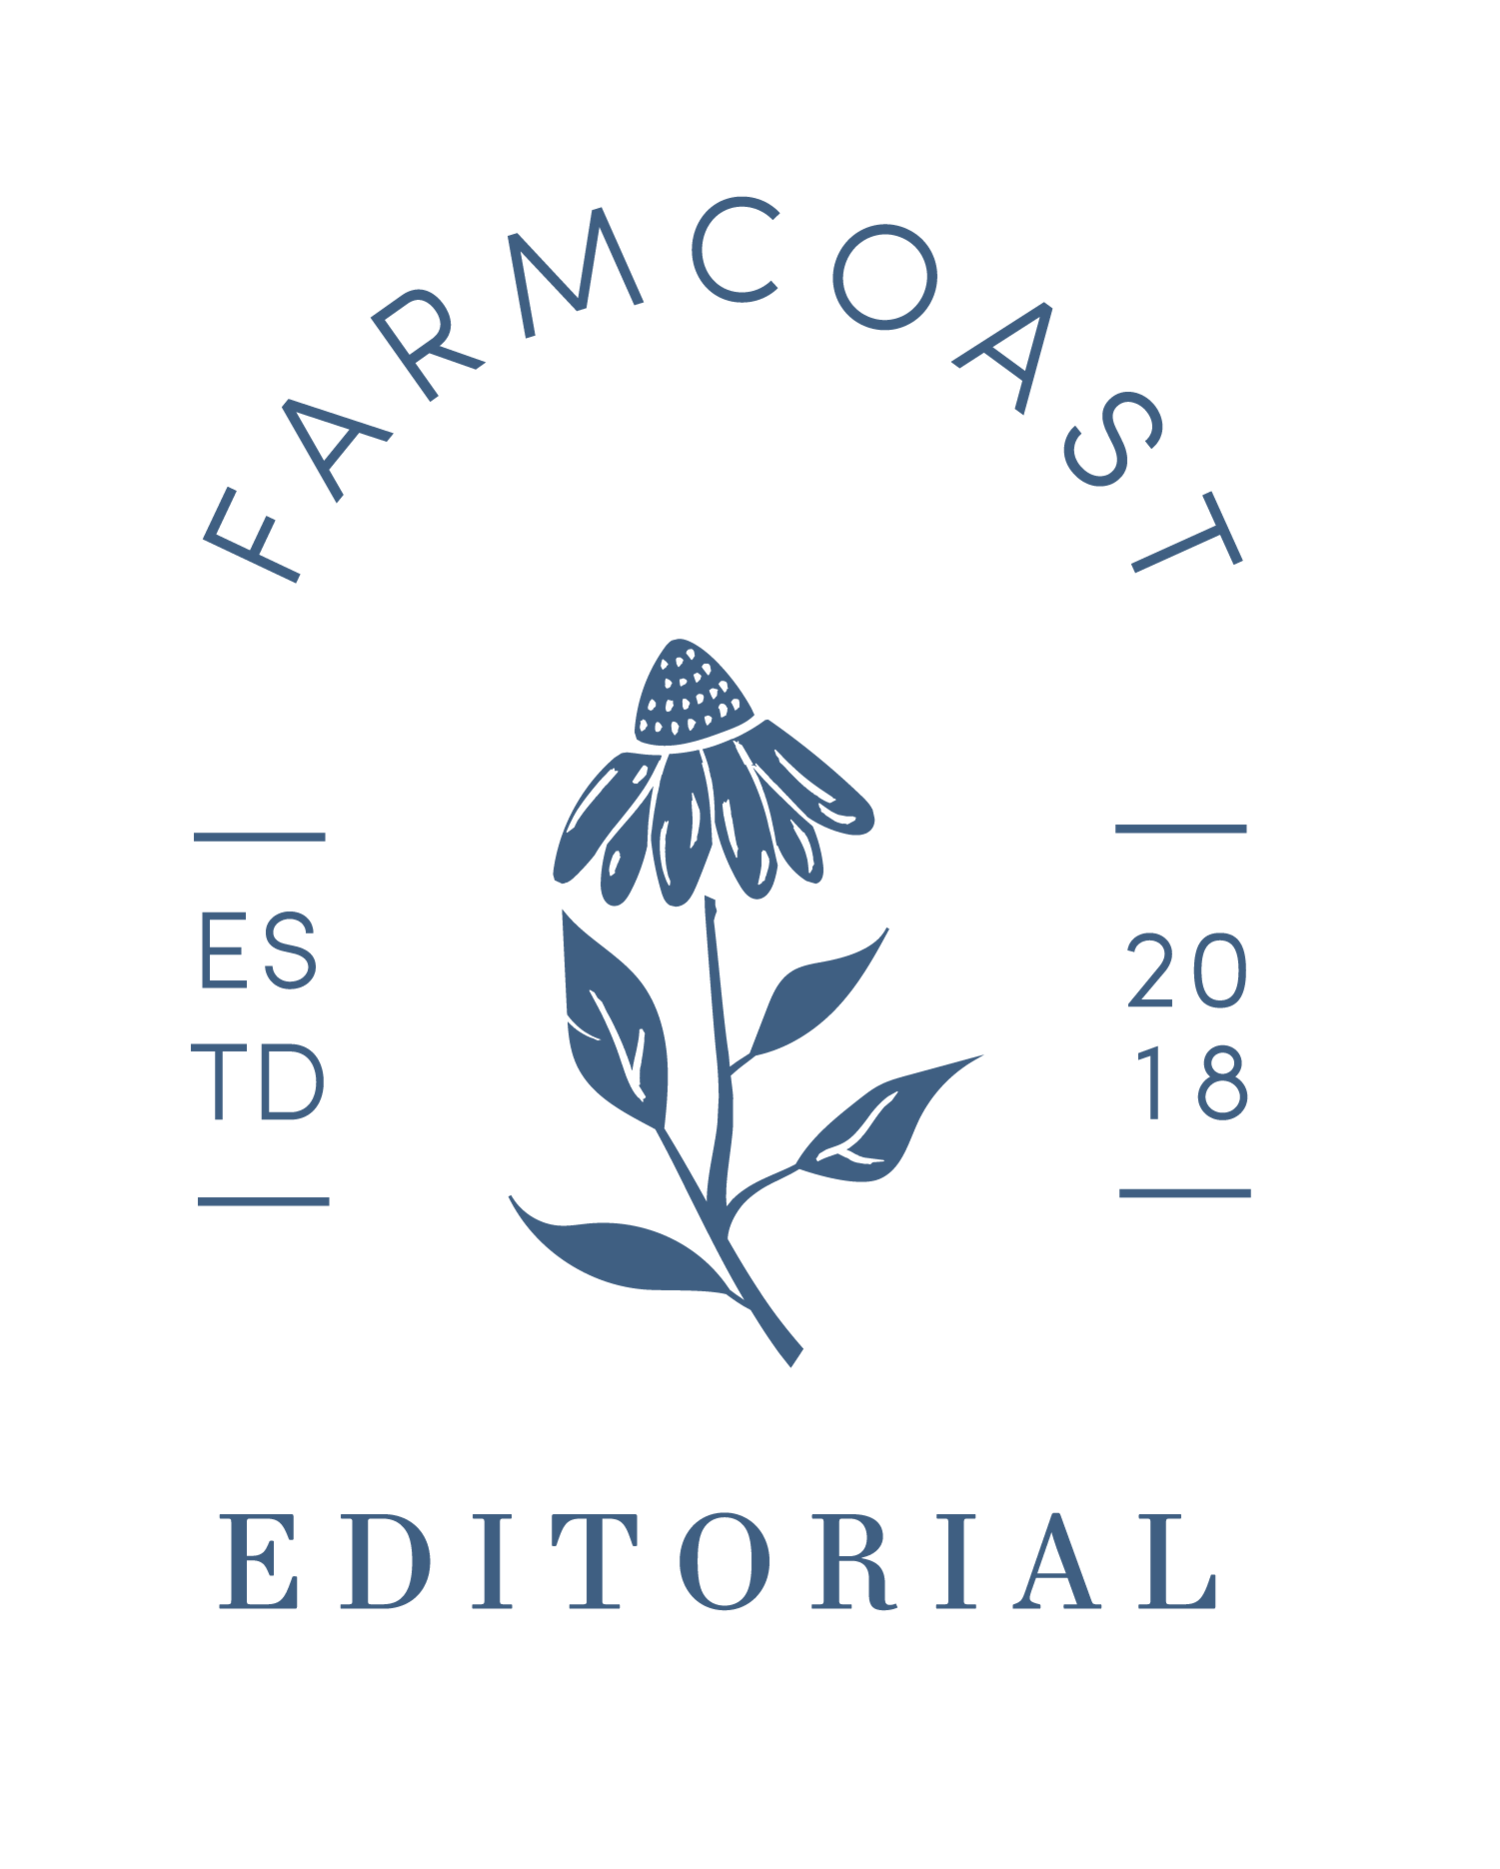 farmcoast editorial